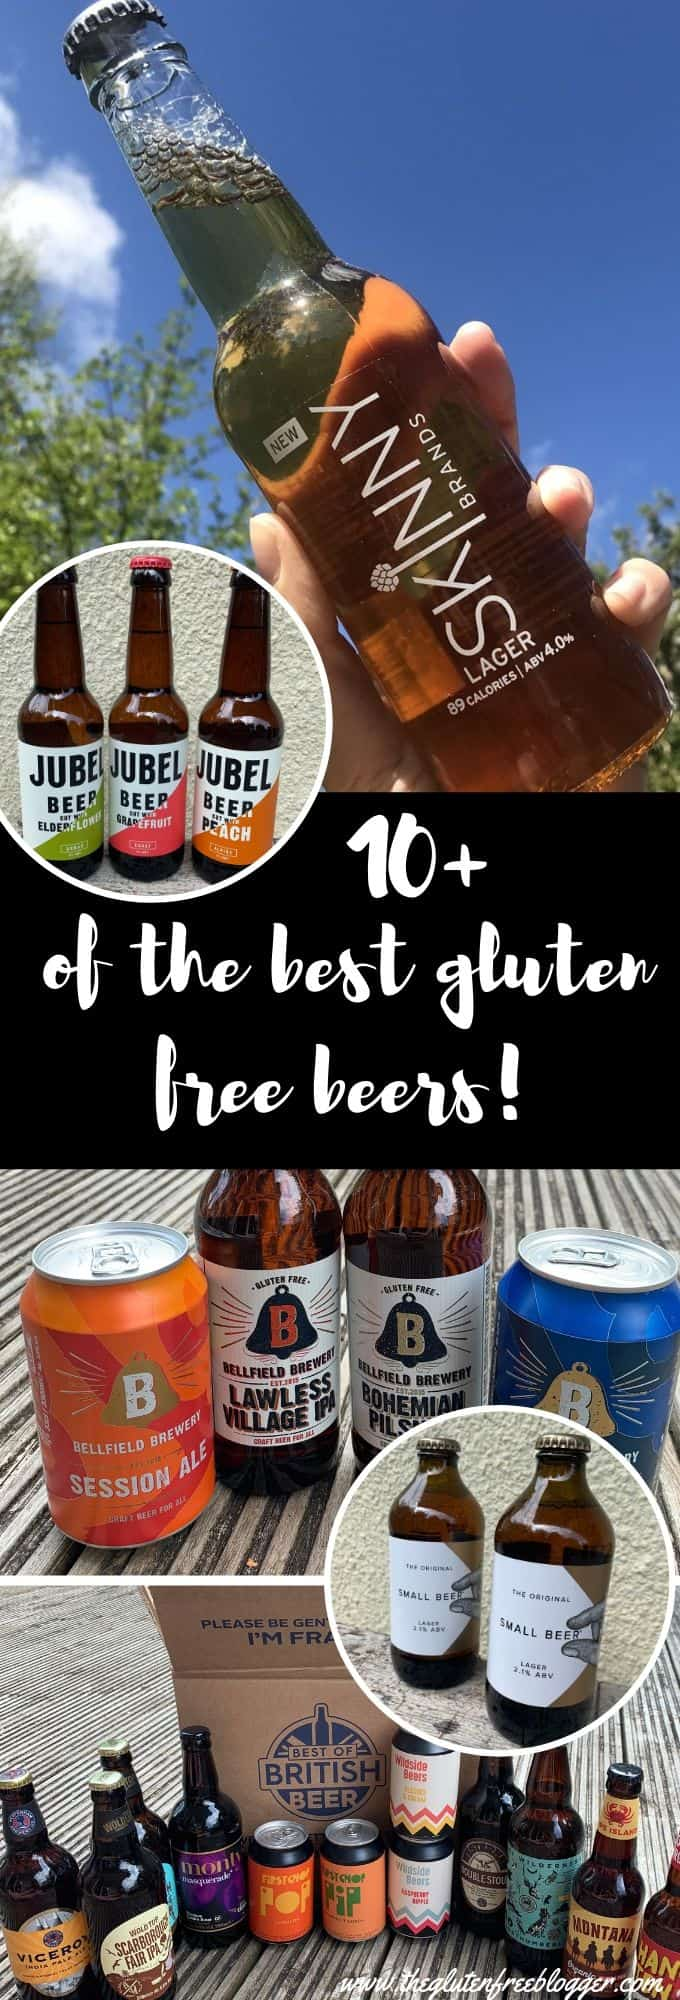 gluten free beers - best british beers - best gluten free ales lager stout IPA in the UK